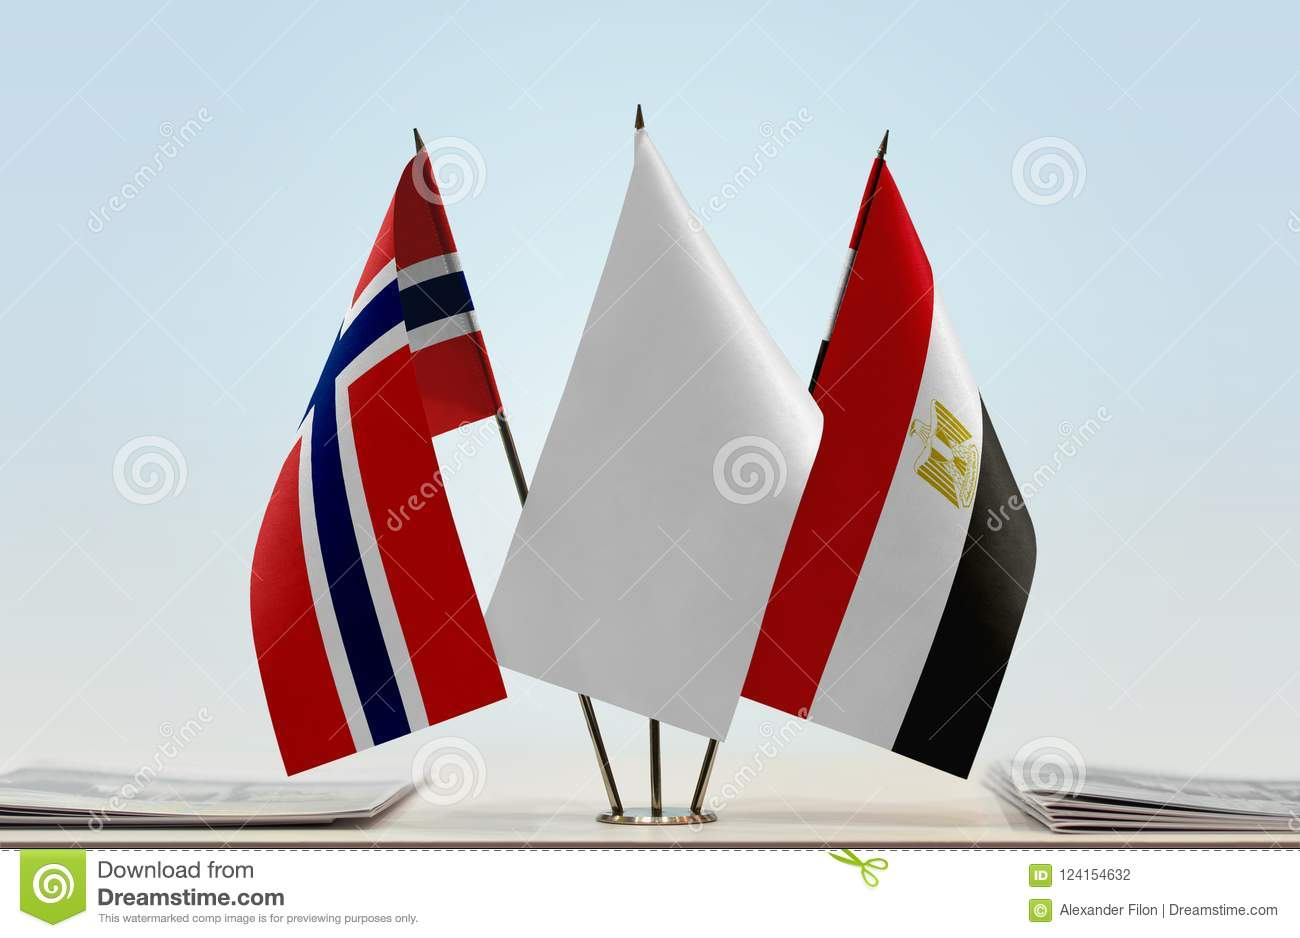 Flags of Norway and Egypt